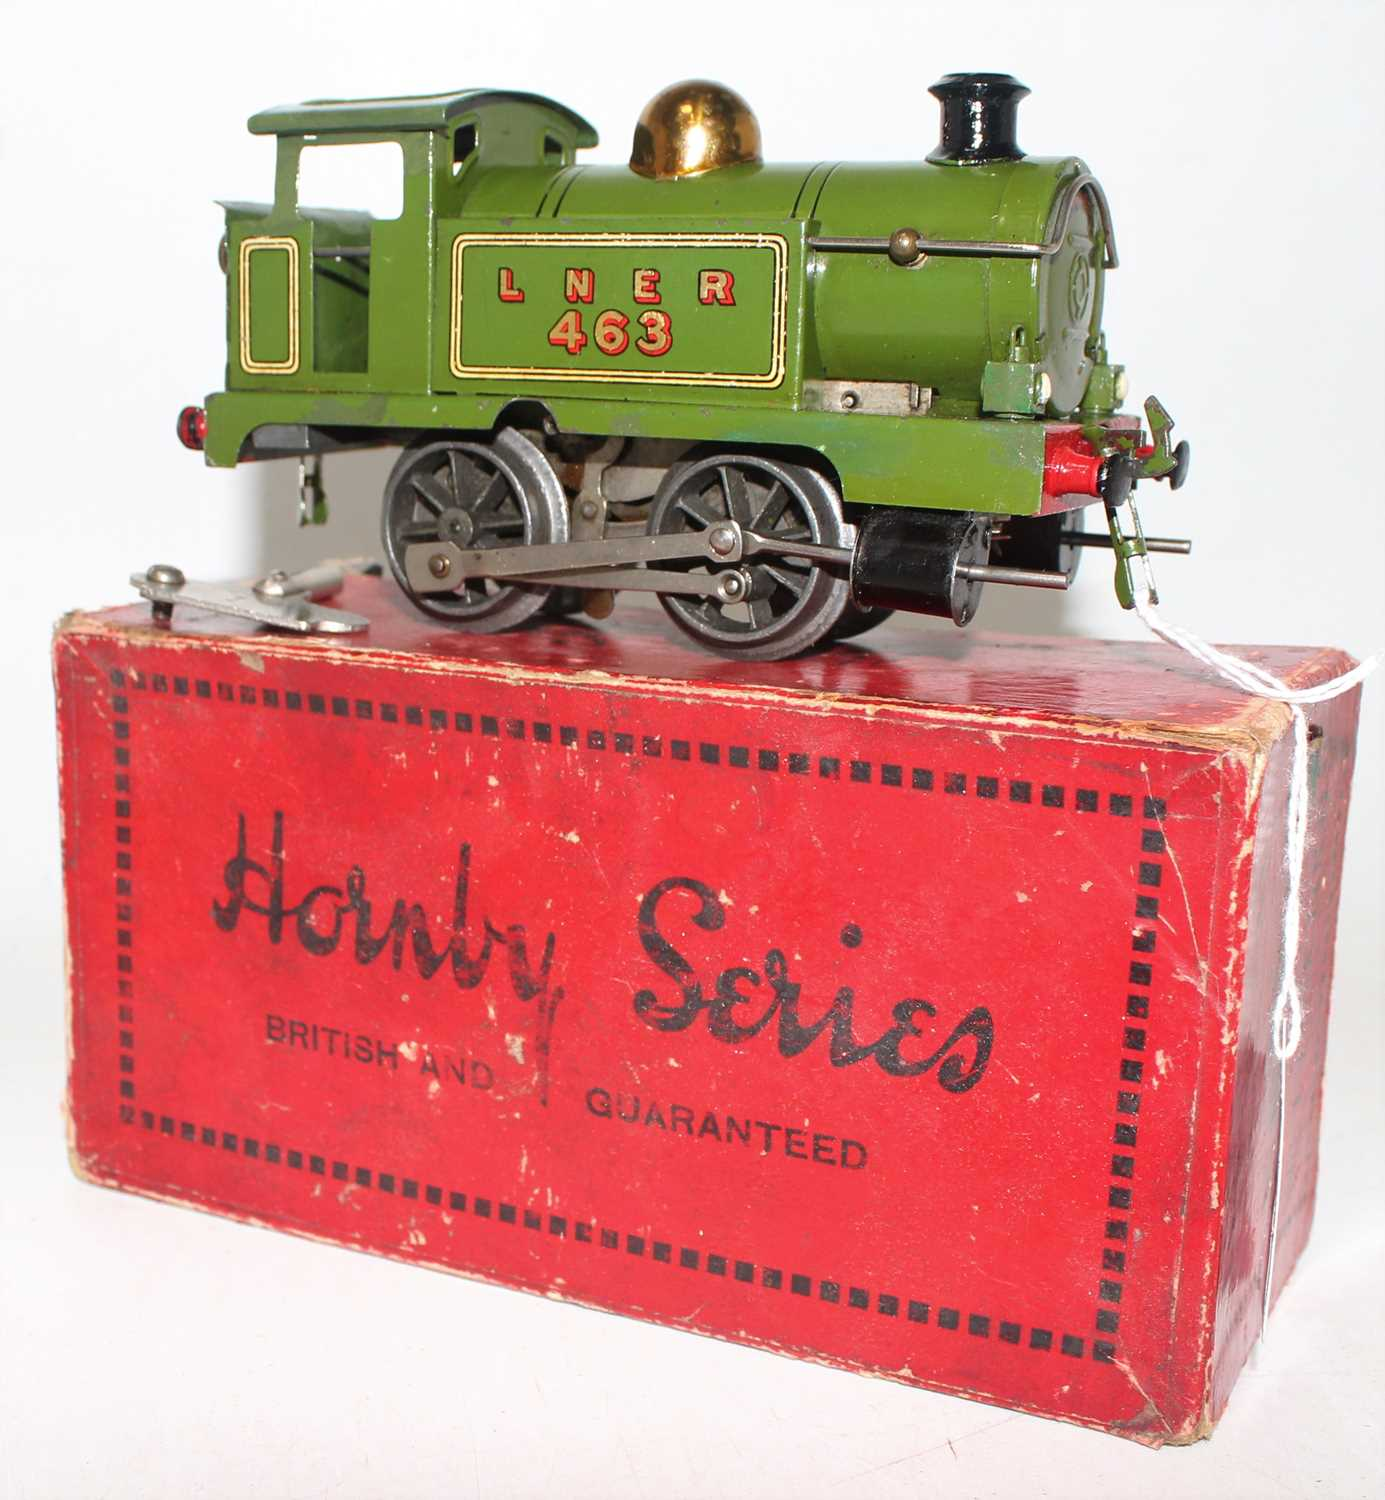 Hornby 1928 No.1 Tank Clockwork loco 0-4-0 LNER Green No.463, brass dome, green smokebox, two - Image 2 of 2